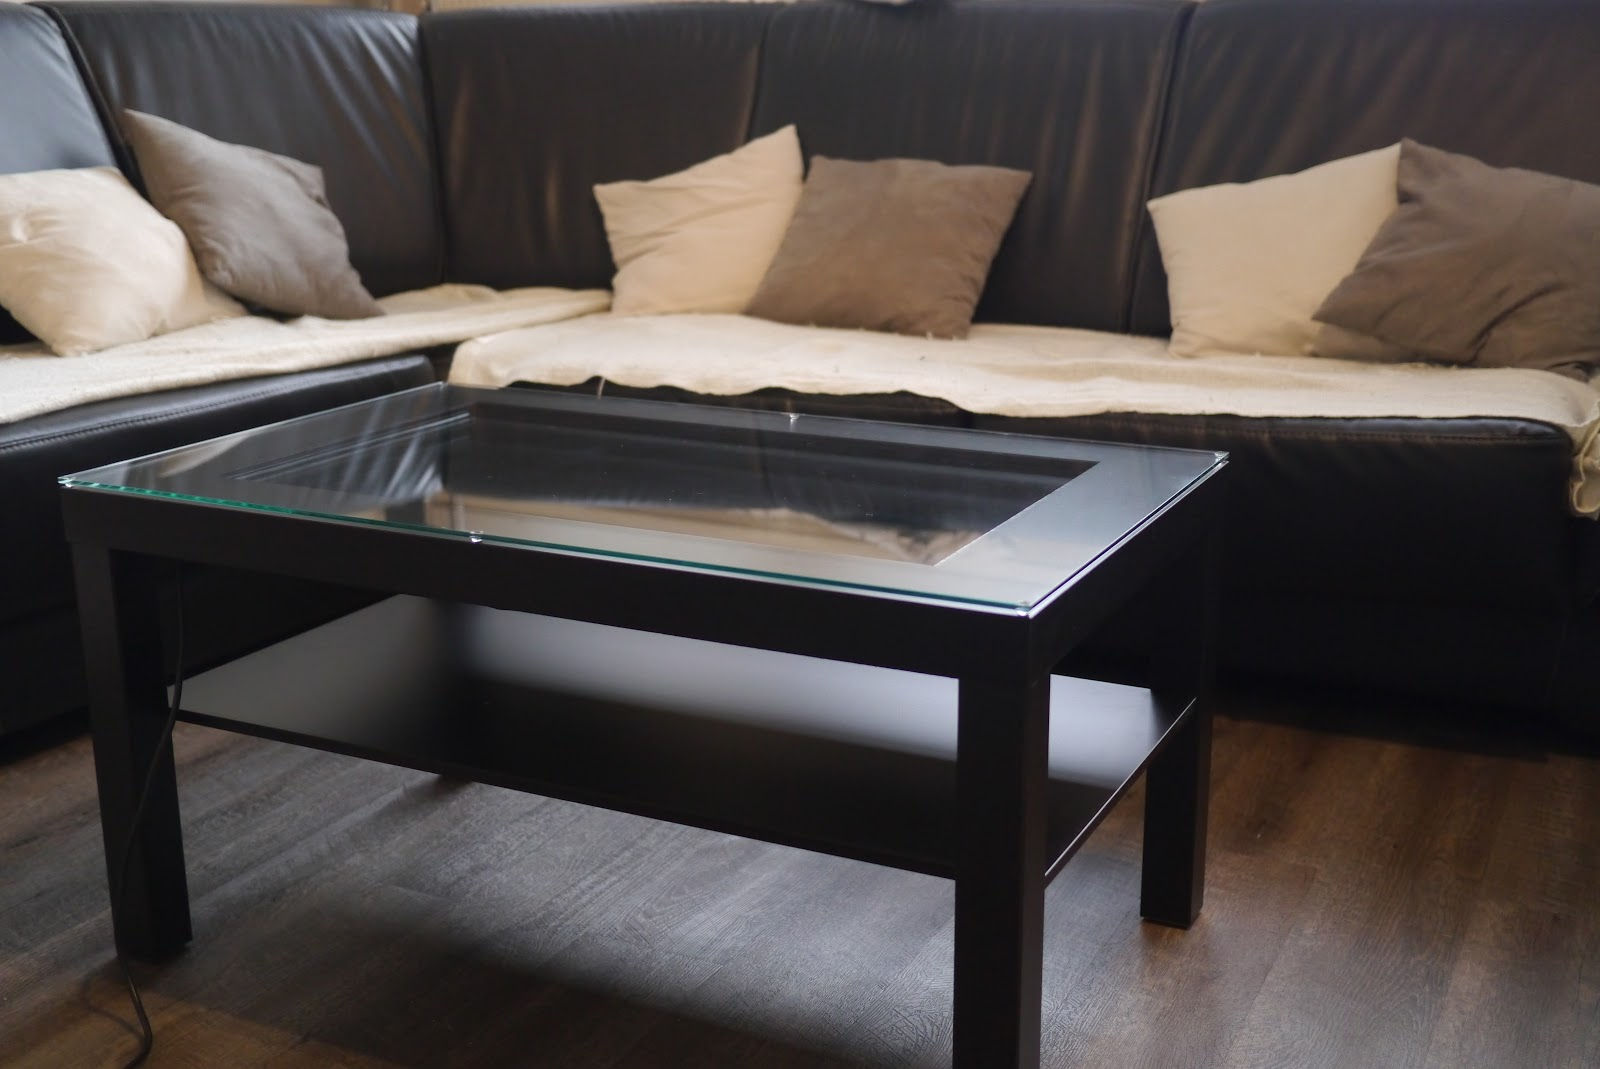 Le diy de droofy table basse tactile v2 pqlab for Ventouse pour table basse en verre